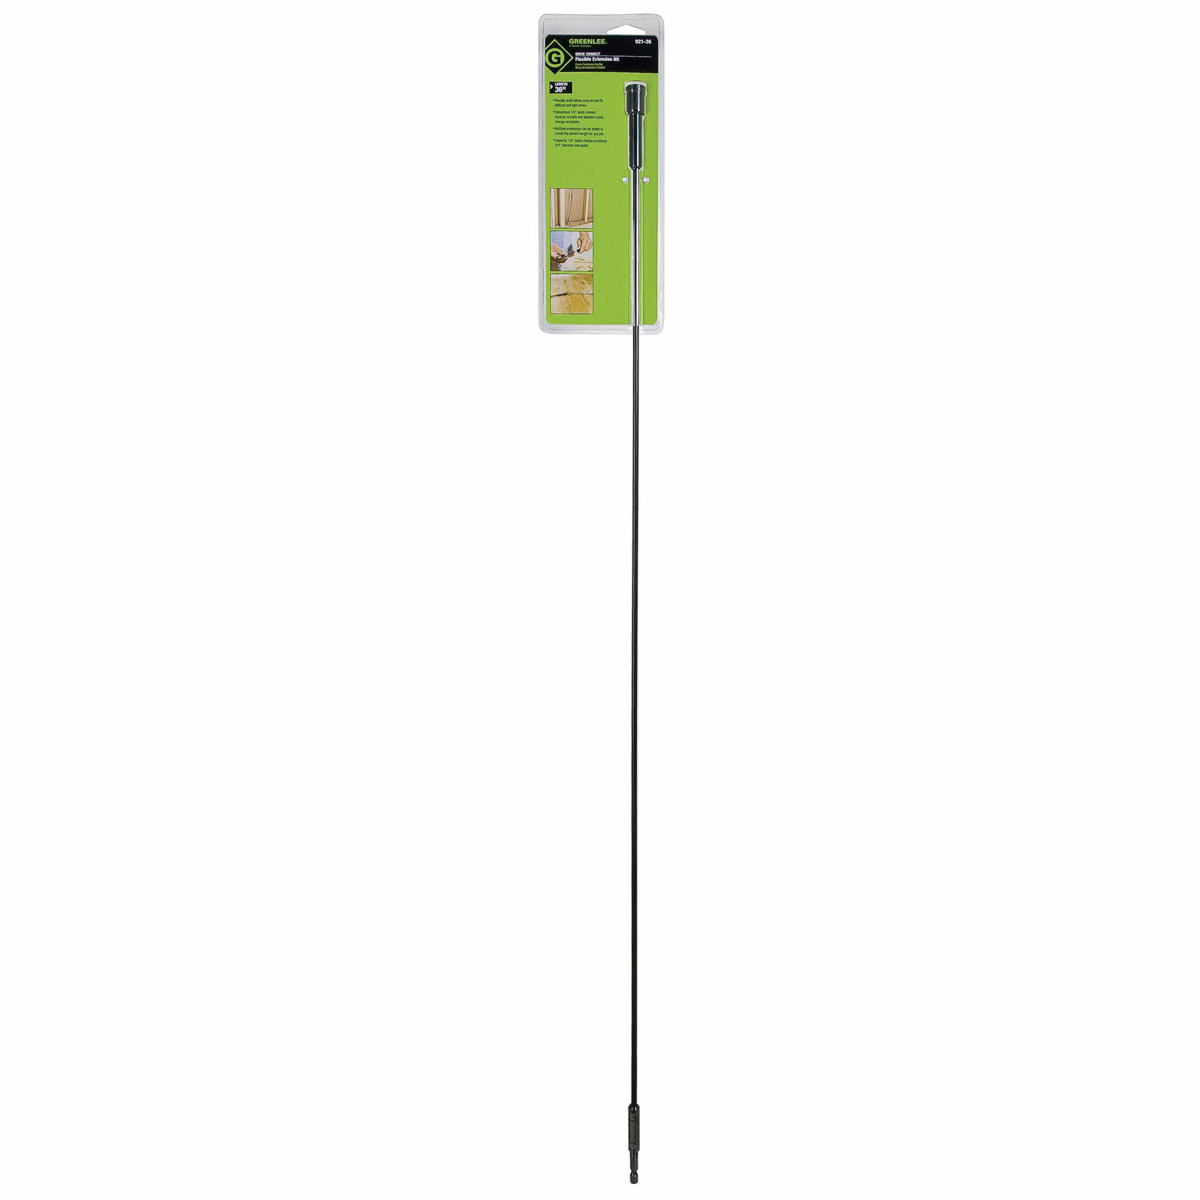 Greenlee 921 36 extension quick change 3 16x36 for Fish tape lowes